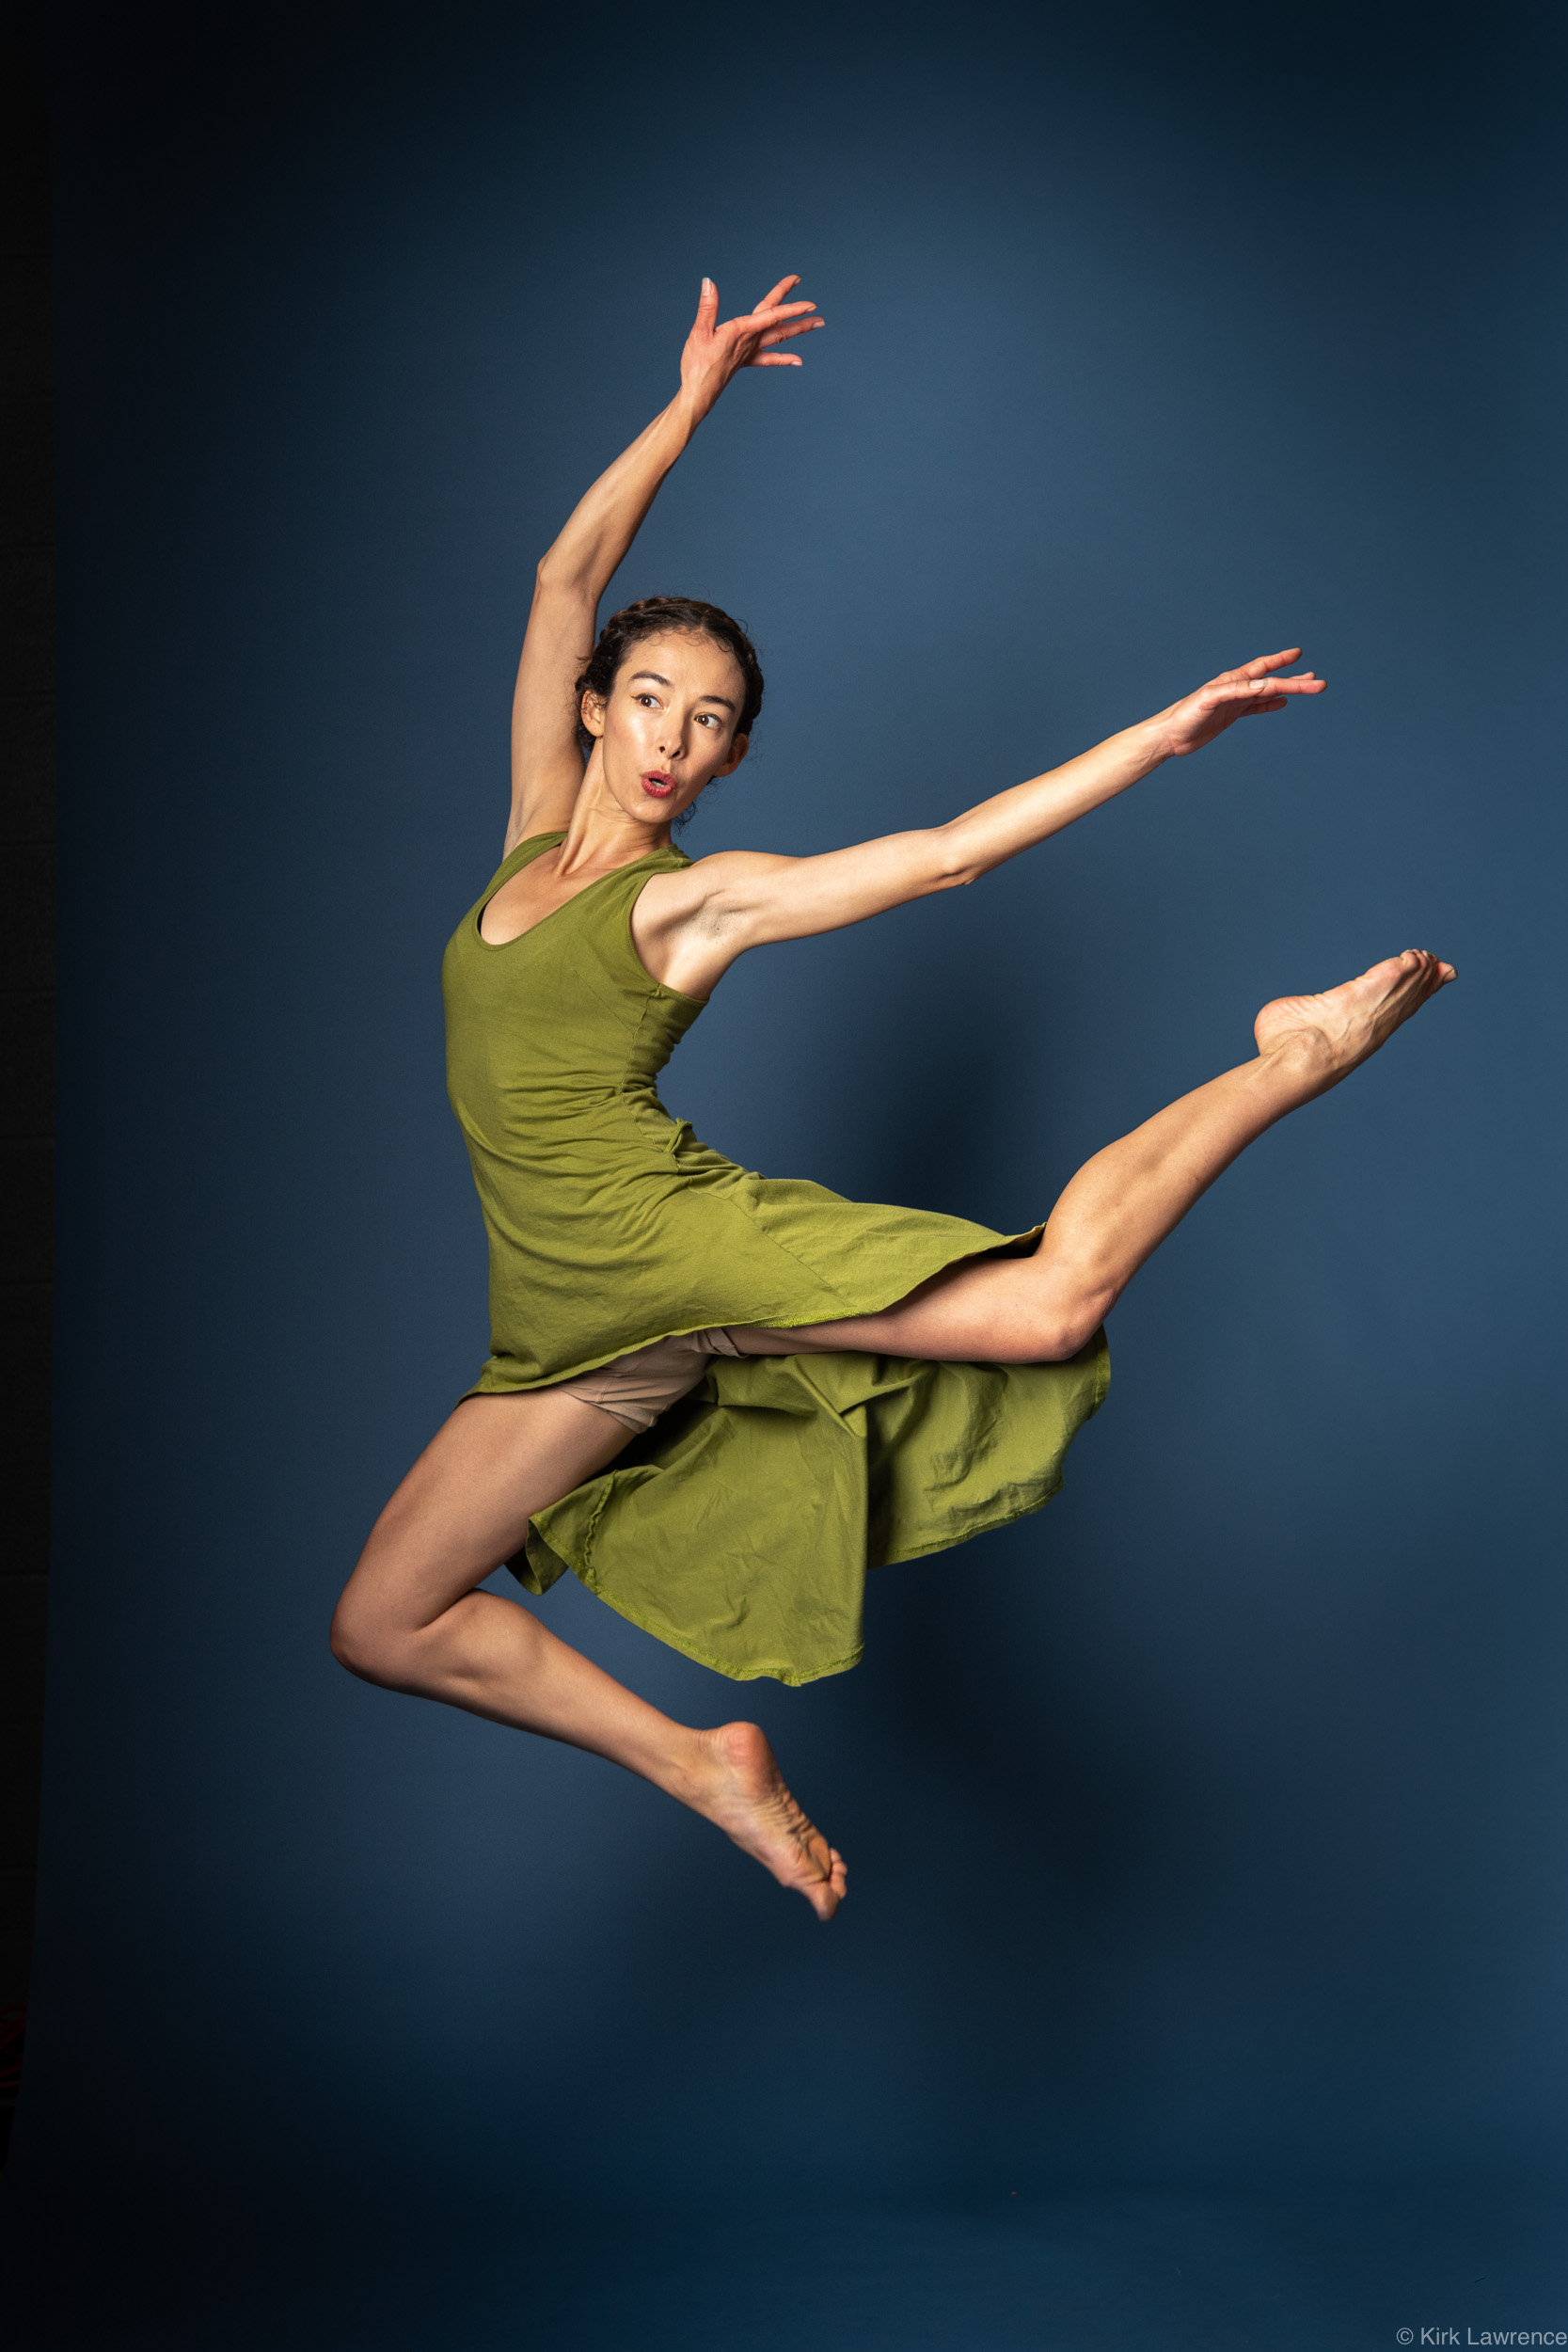 modern_dancer_jumping_green_dress.jpg